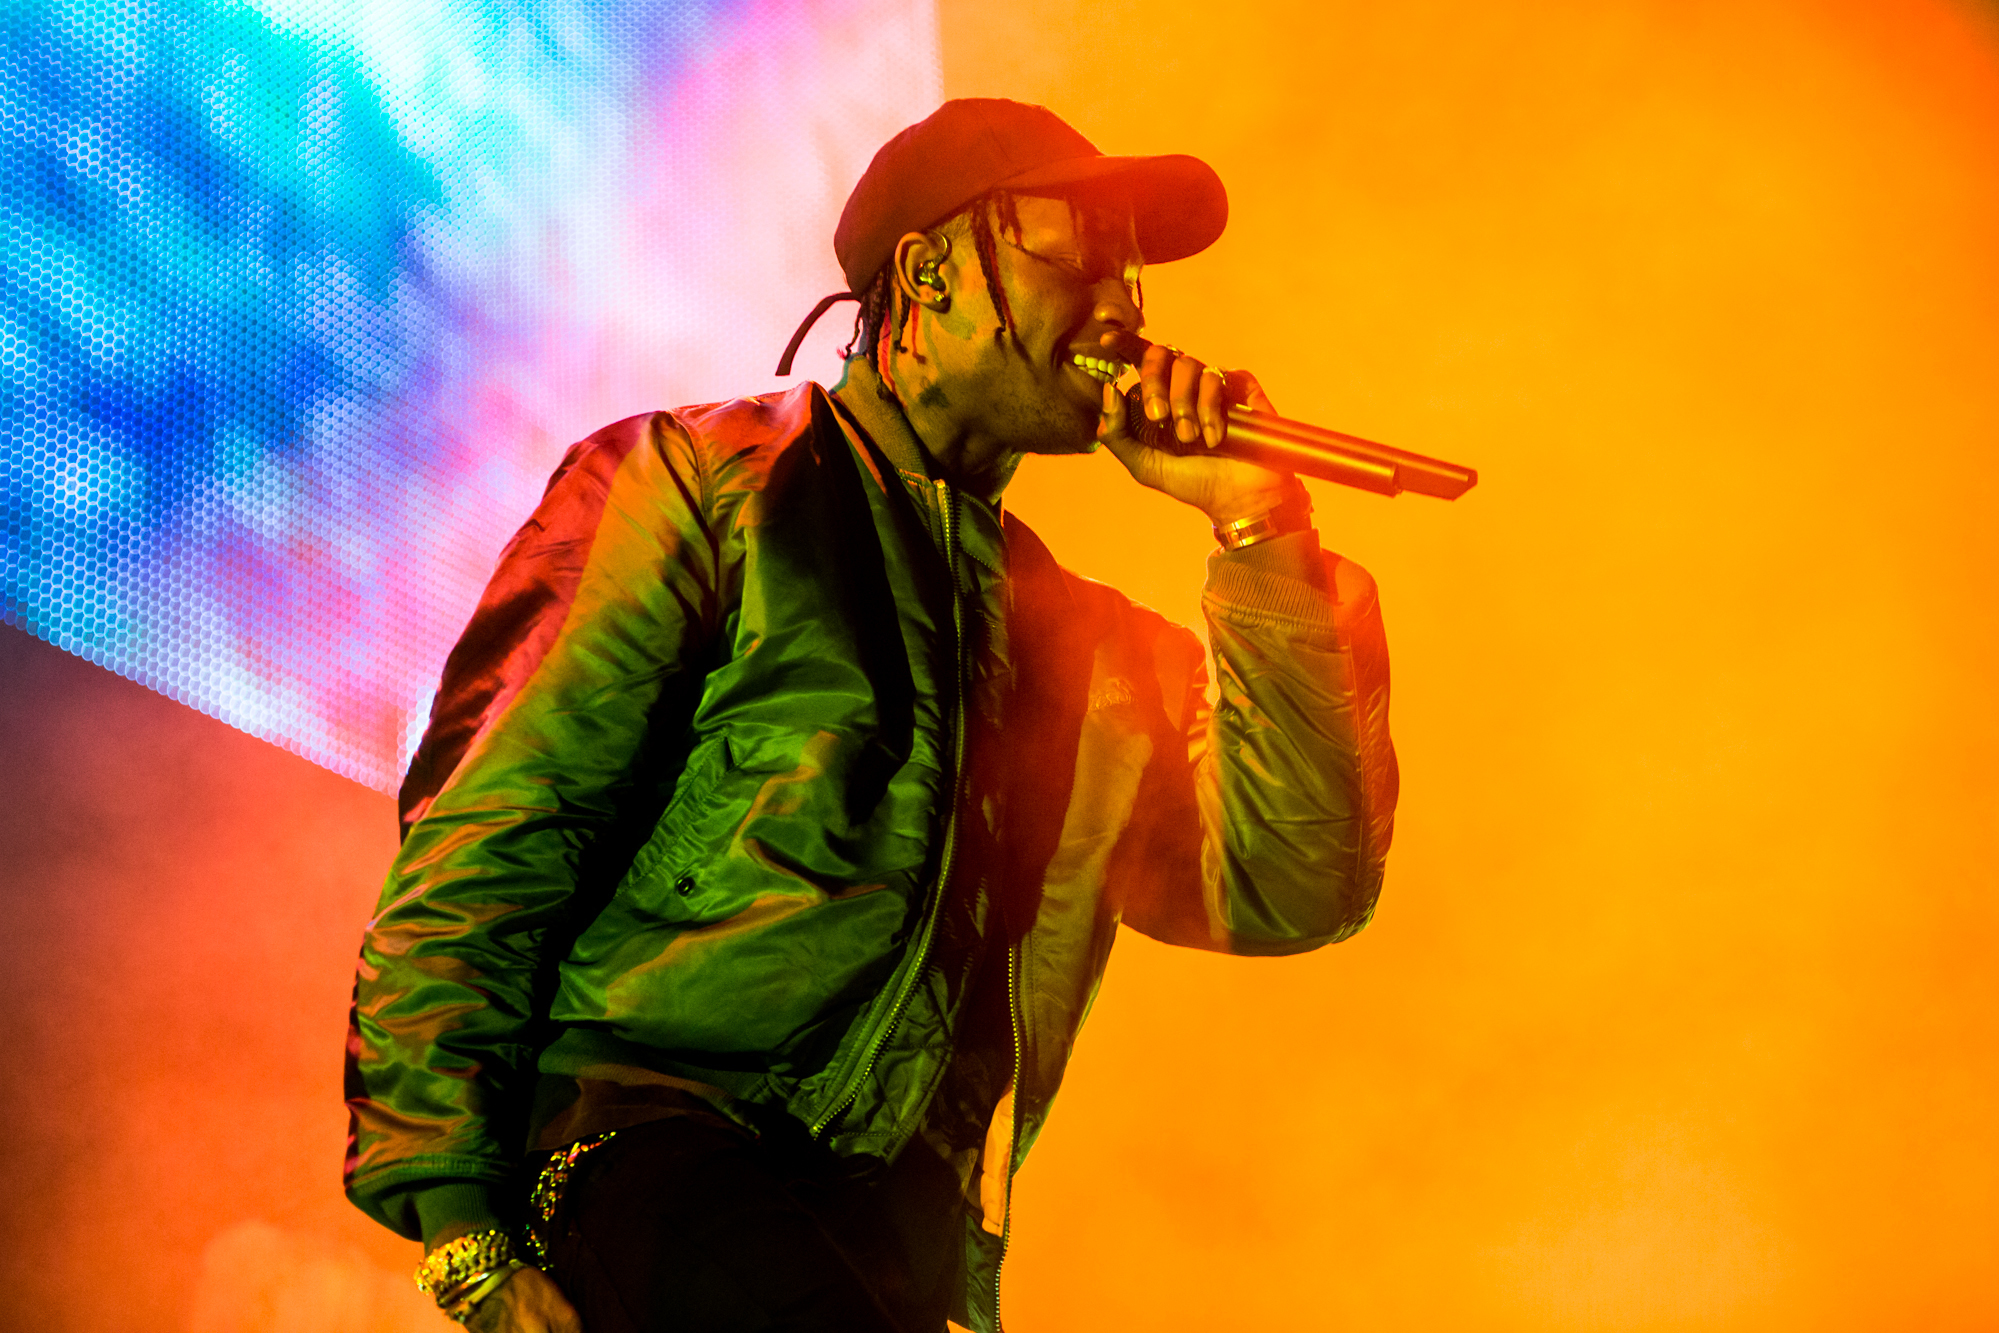 travis scott performing wallpaper 62073